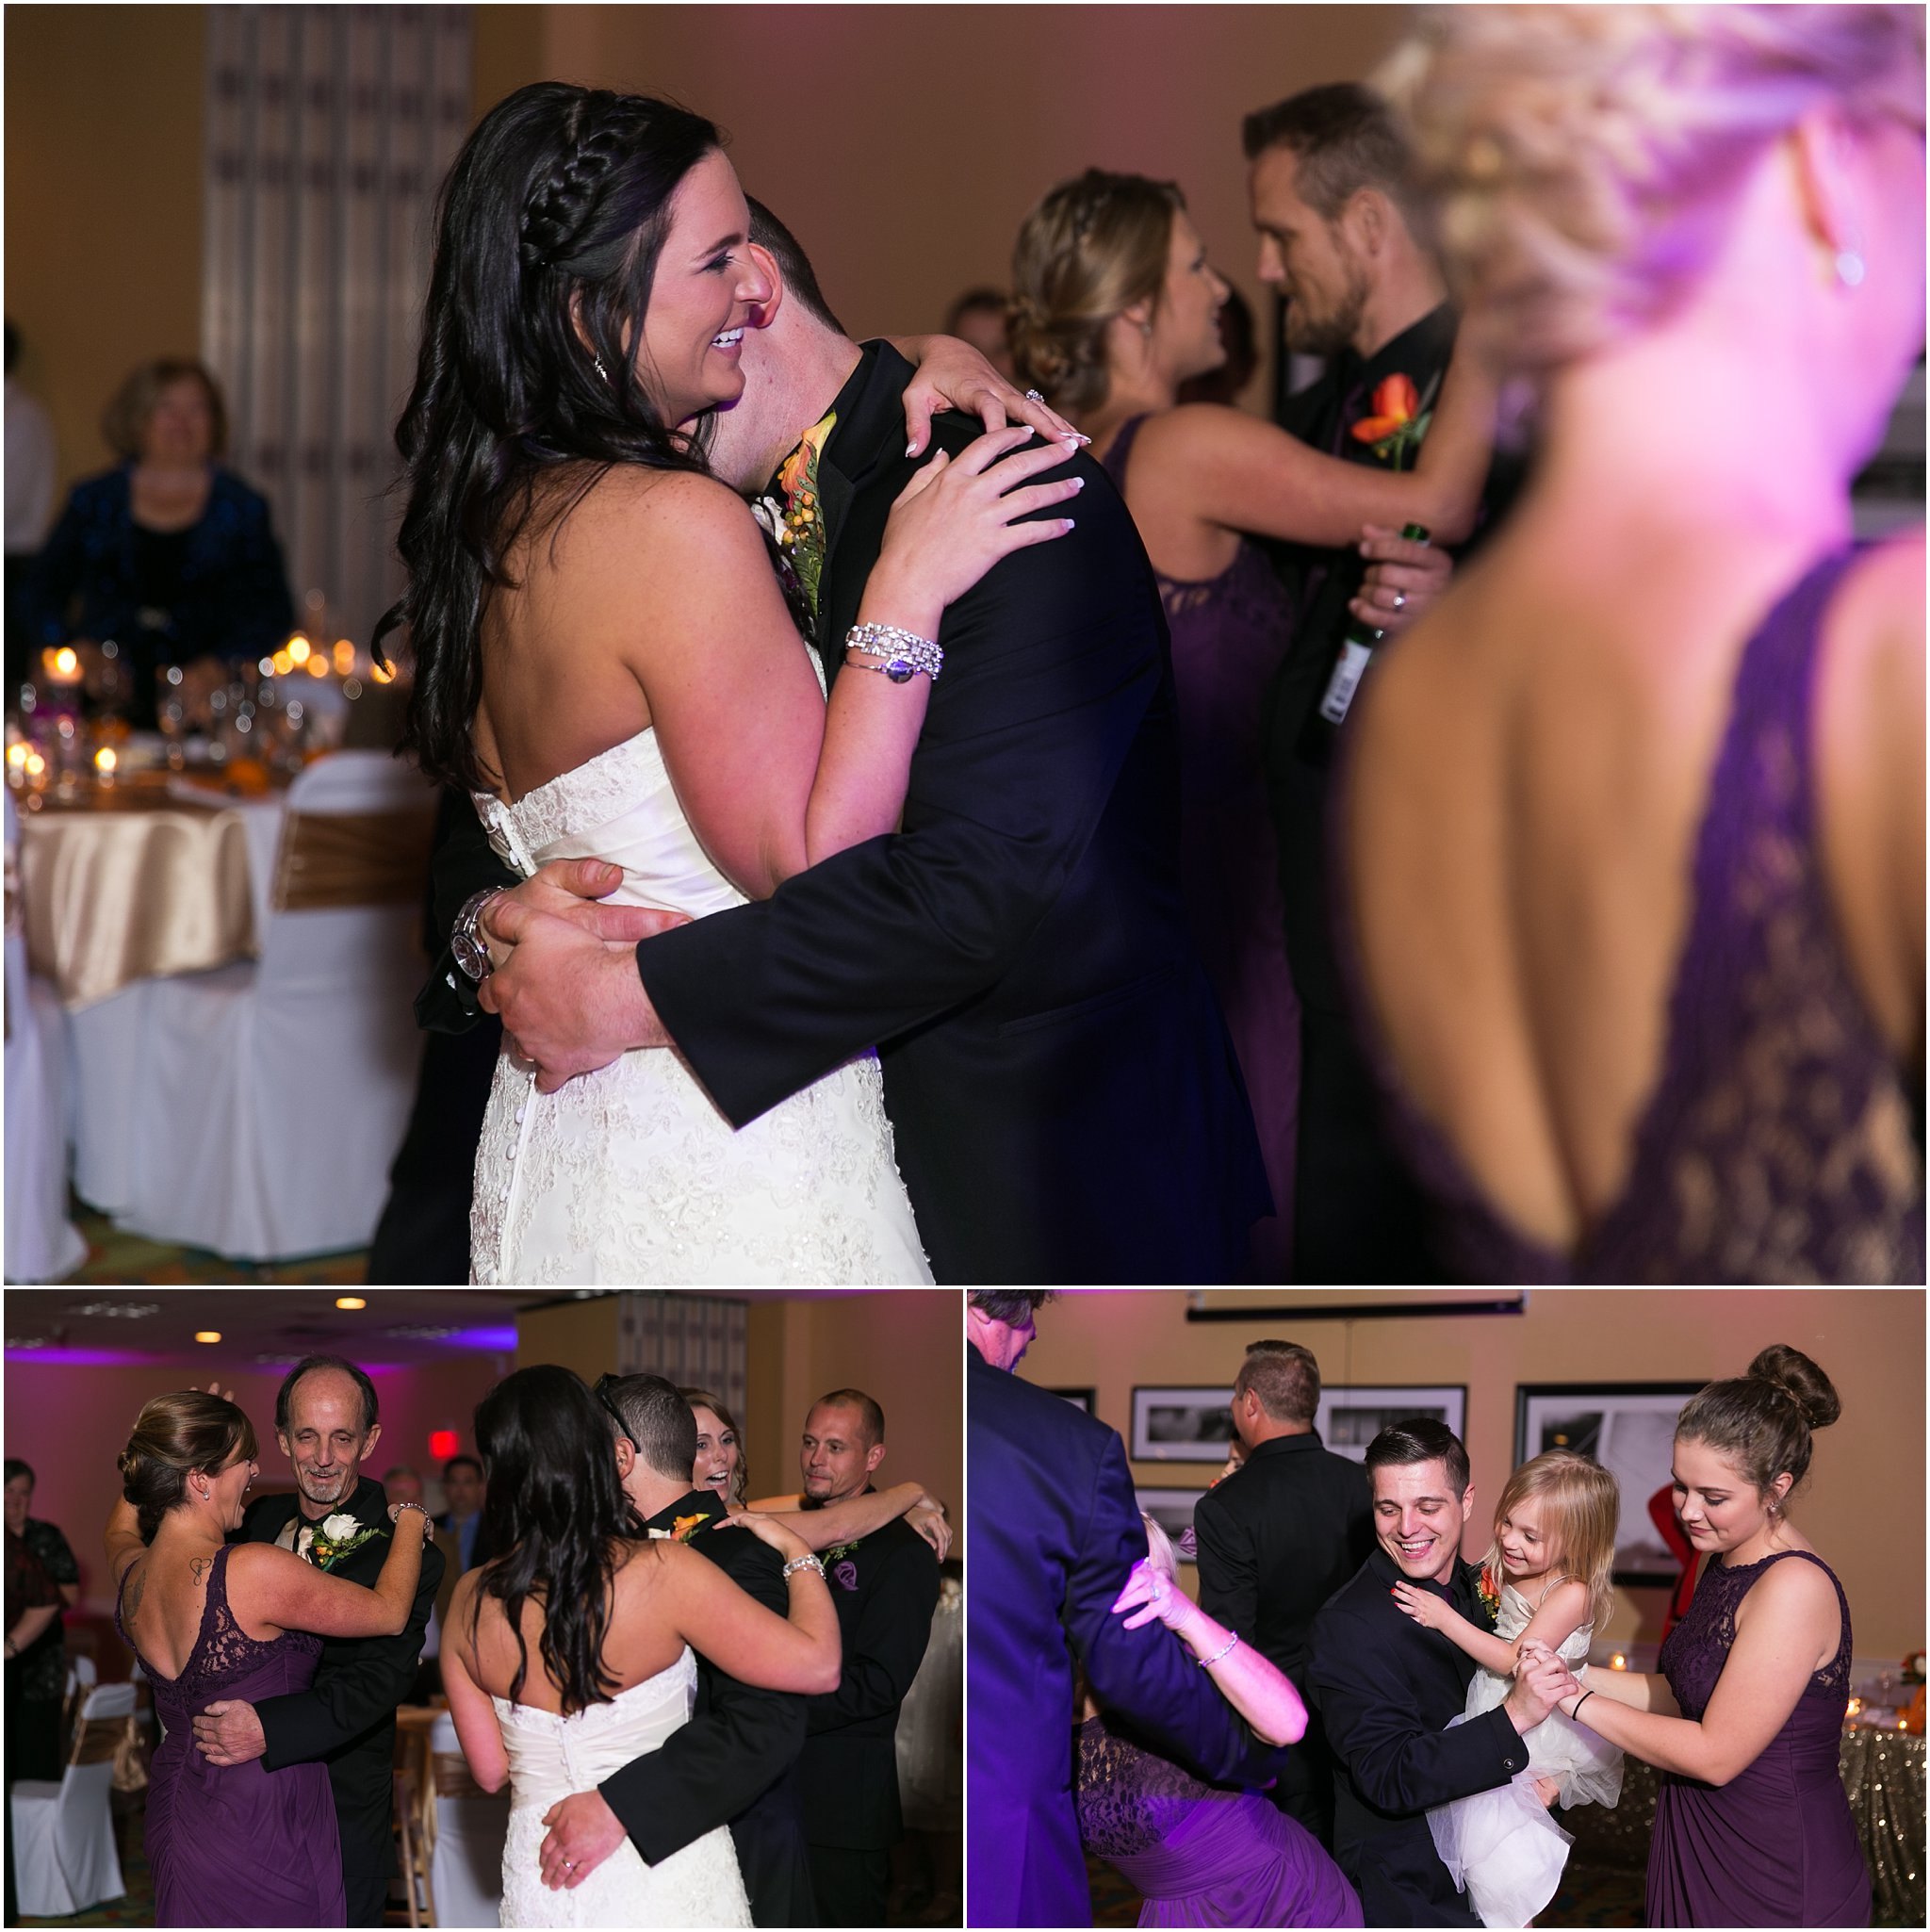 jessica_ryan_photography_wedding_virginia_beach_oceanfront_holiday_inn_north_suites_hotel_wedding_0707